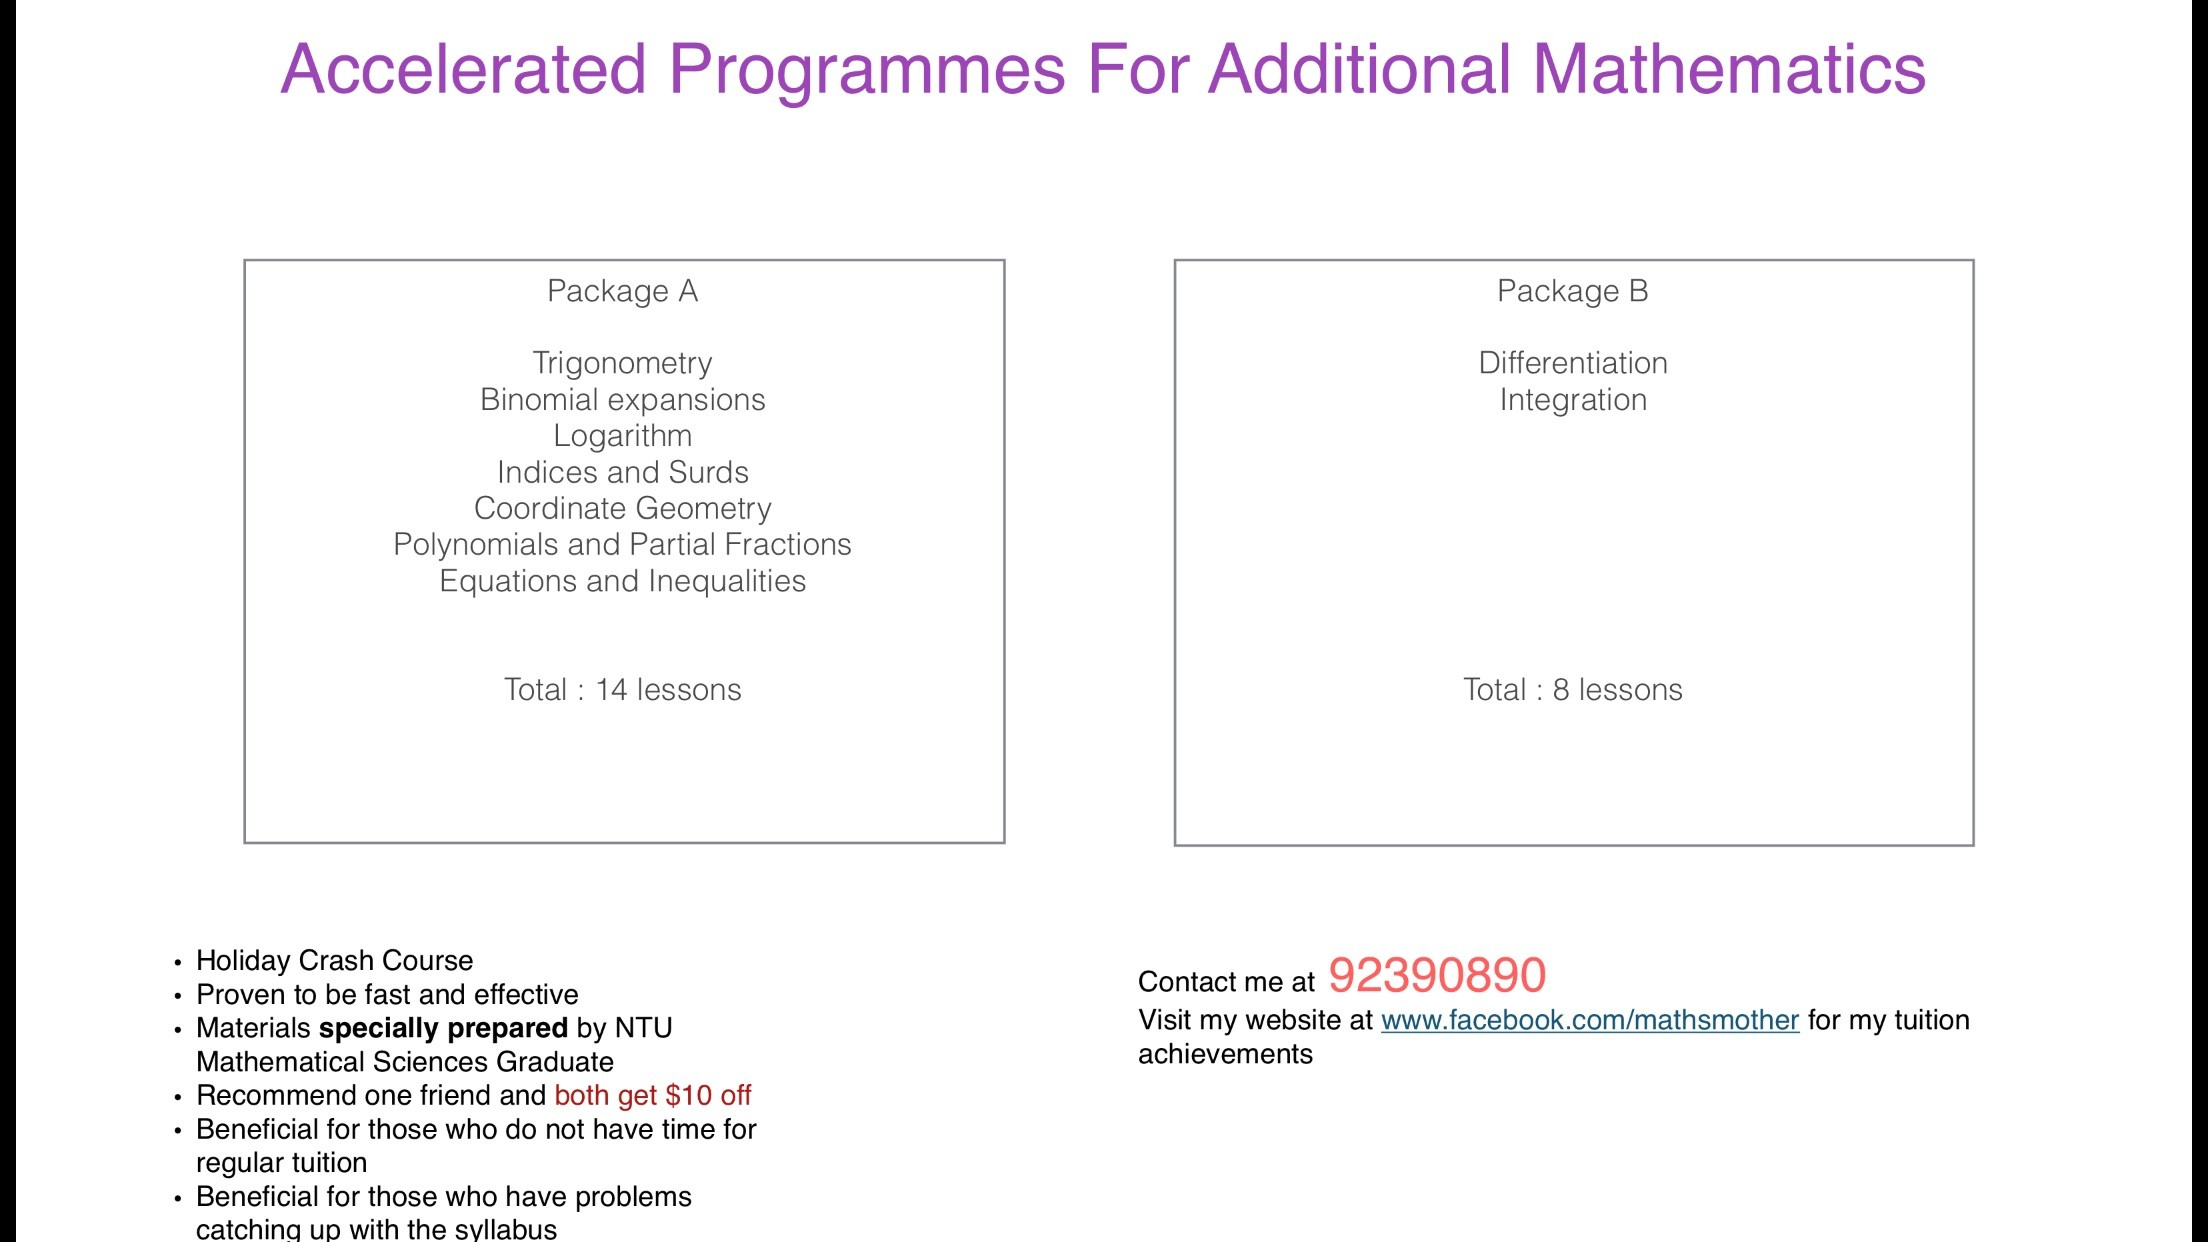 Accelerated Amaths programmes